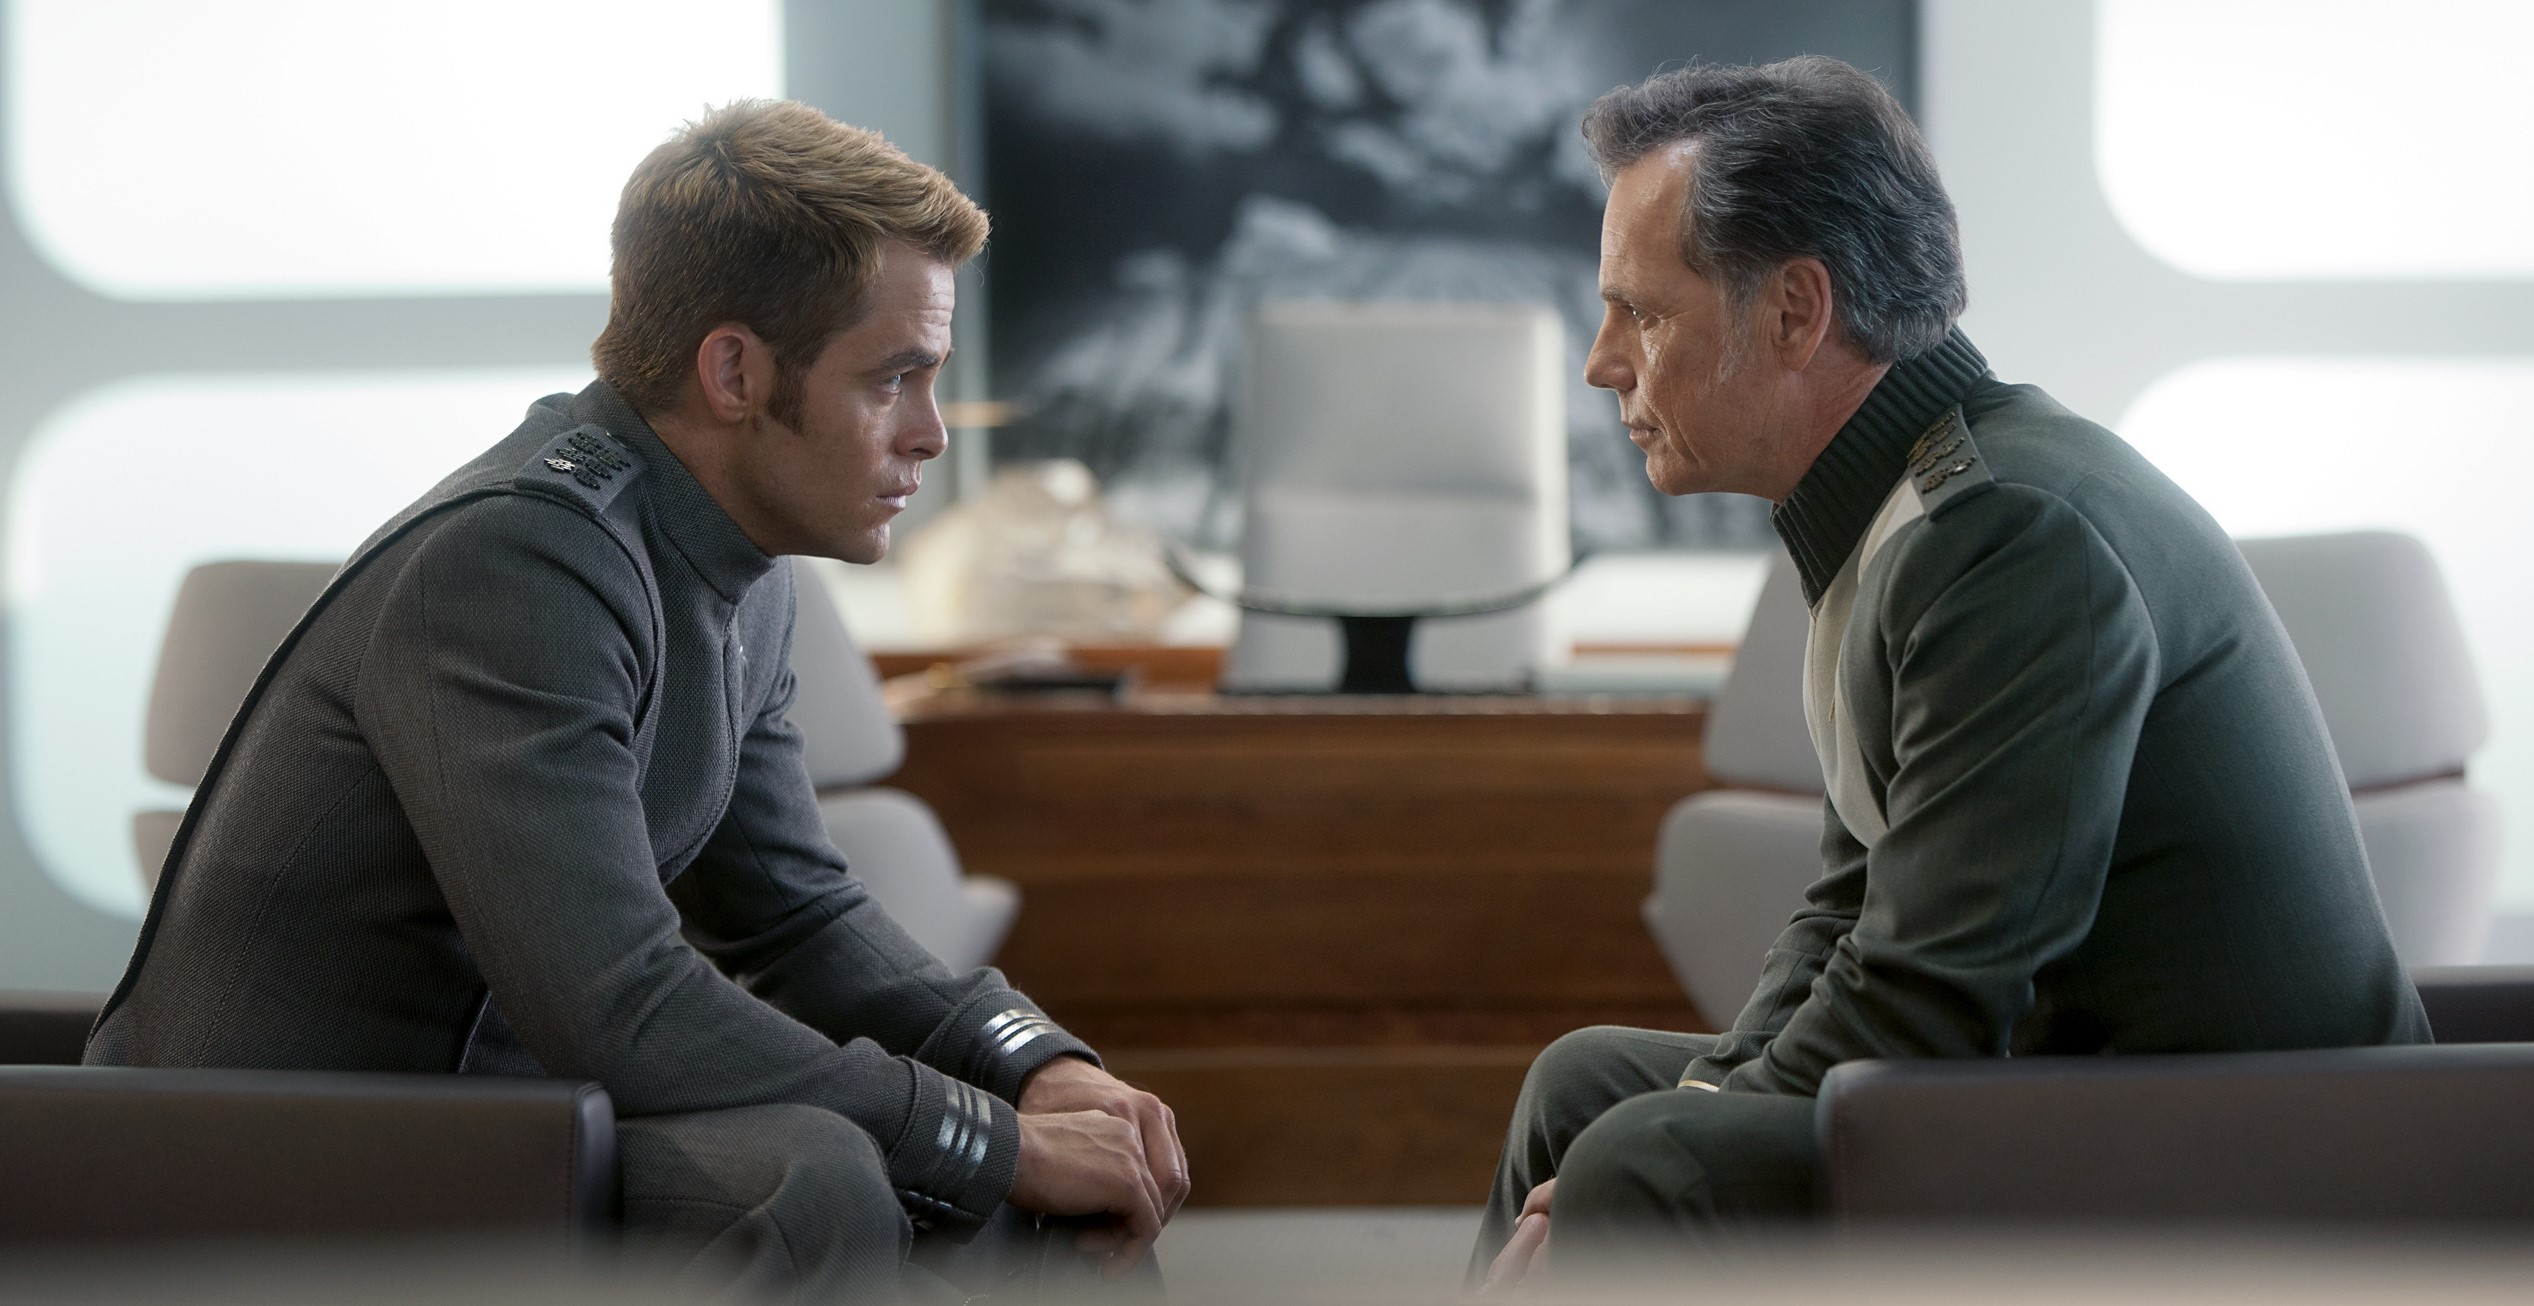 star-trek-into-darkness-chris-pine-bruce-greenwood2.jpg